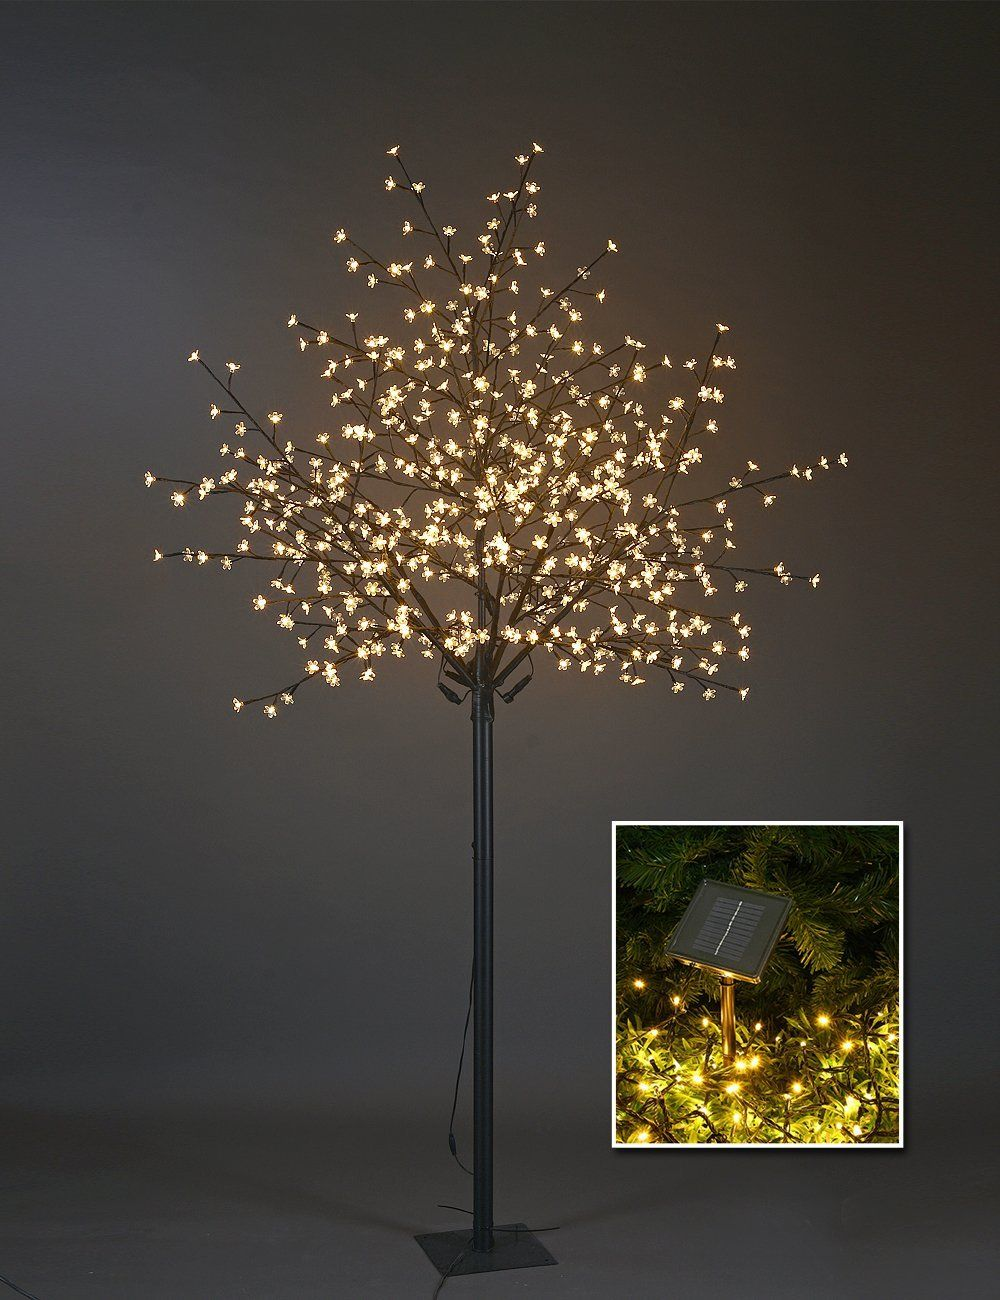 Lightshare Update 8ft 600l Led Cherry Blossom City Tree Plus A Free Gift 70l Led Solar Decoration Light For Home Decor City Tree City Decor Cherry Blossom Tree